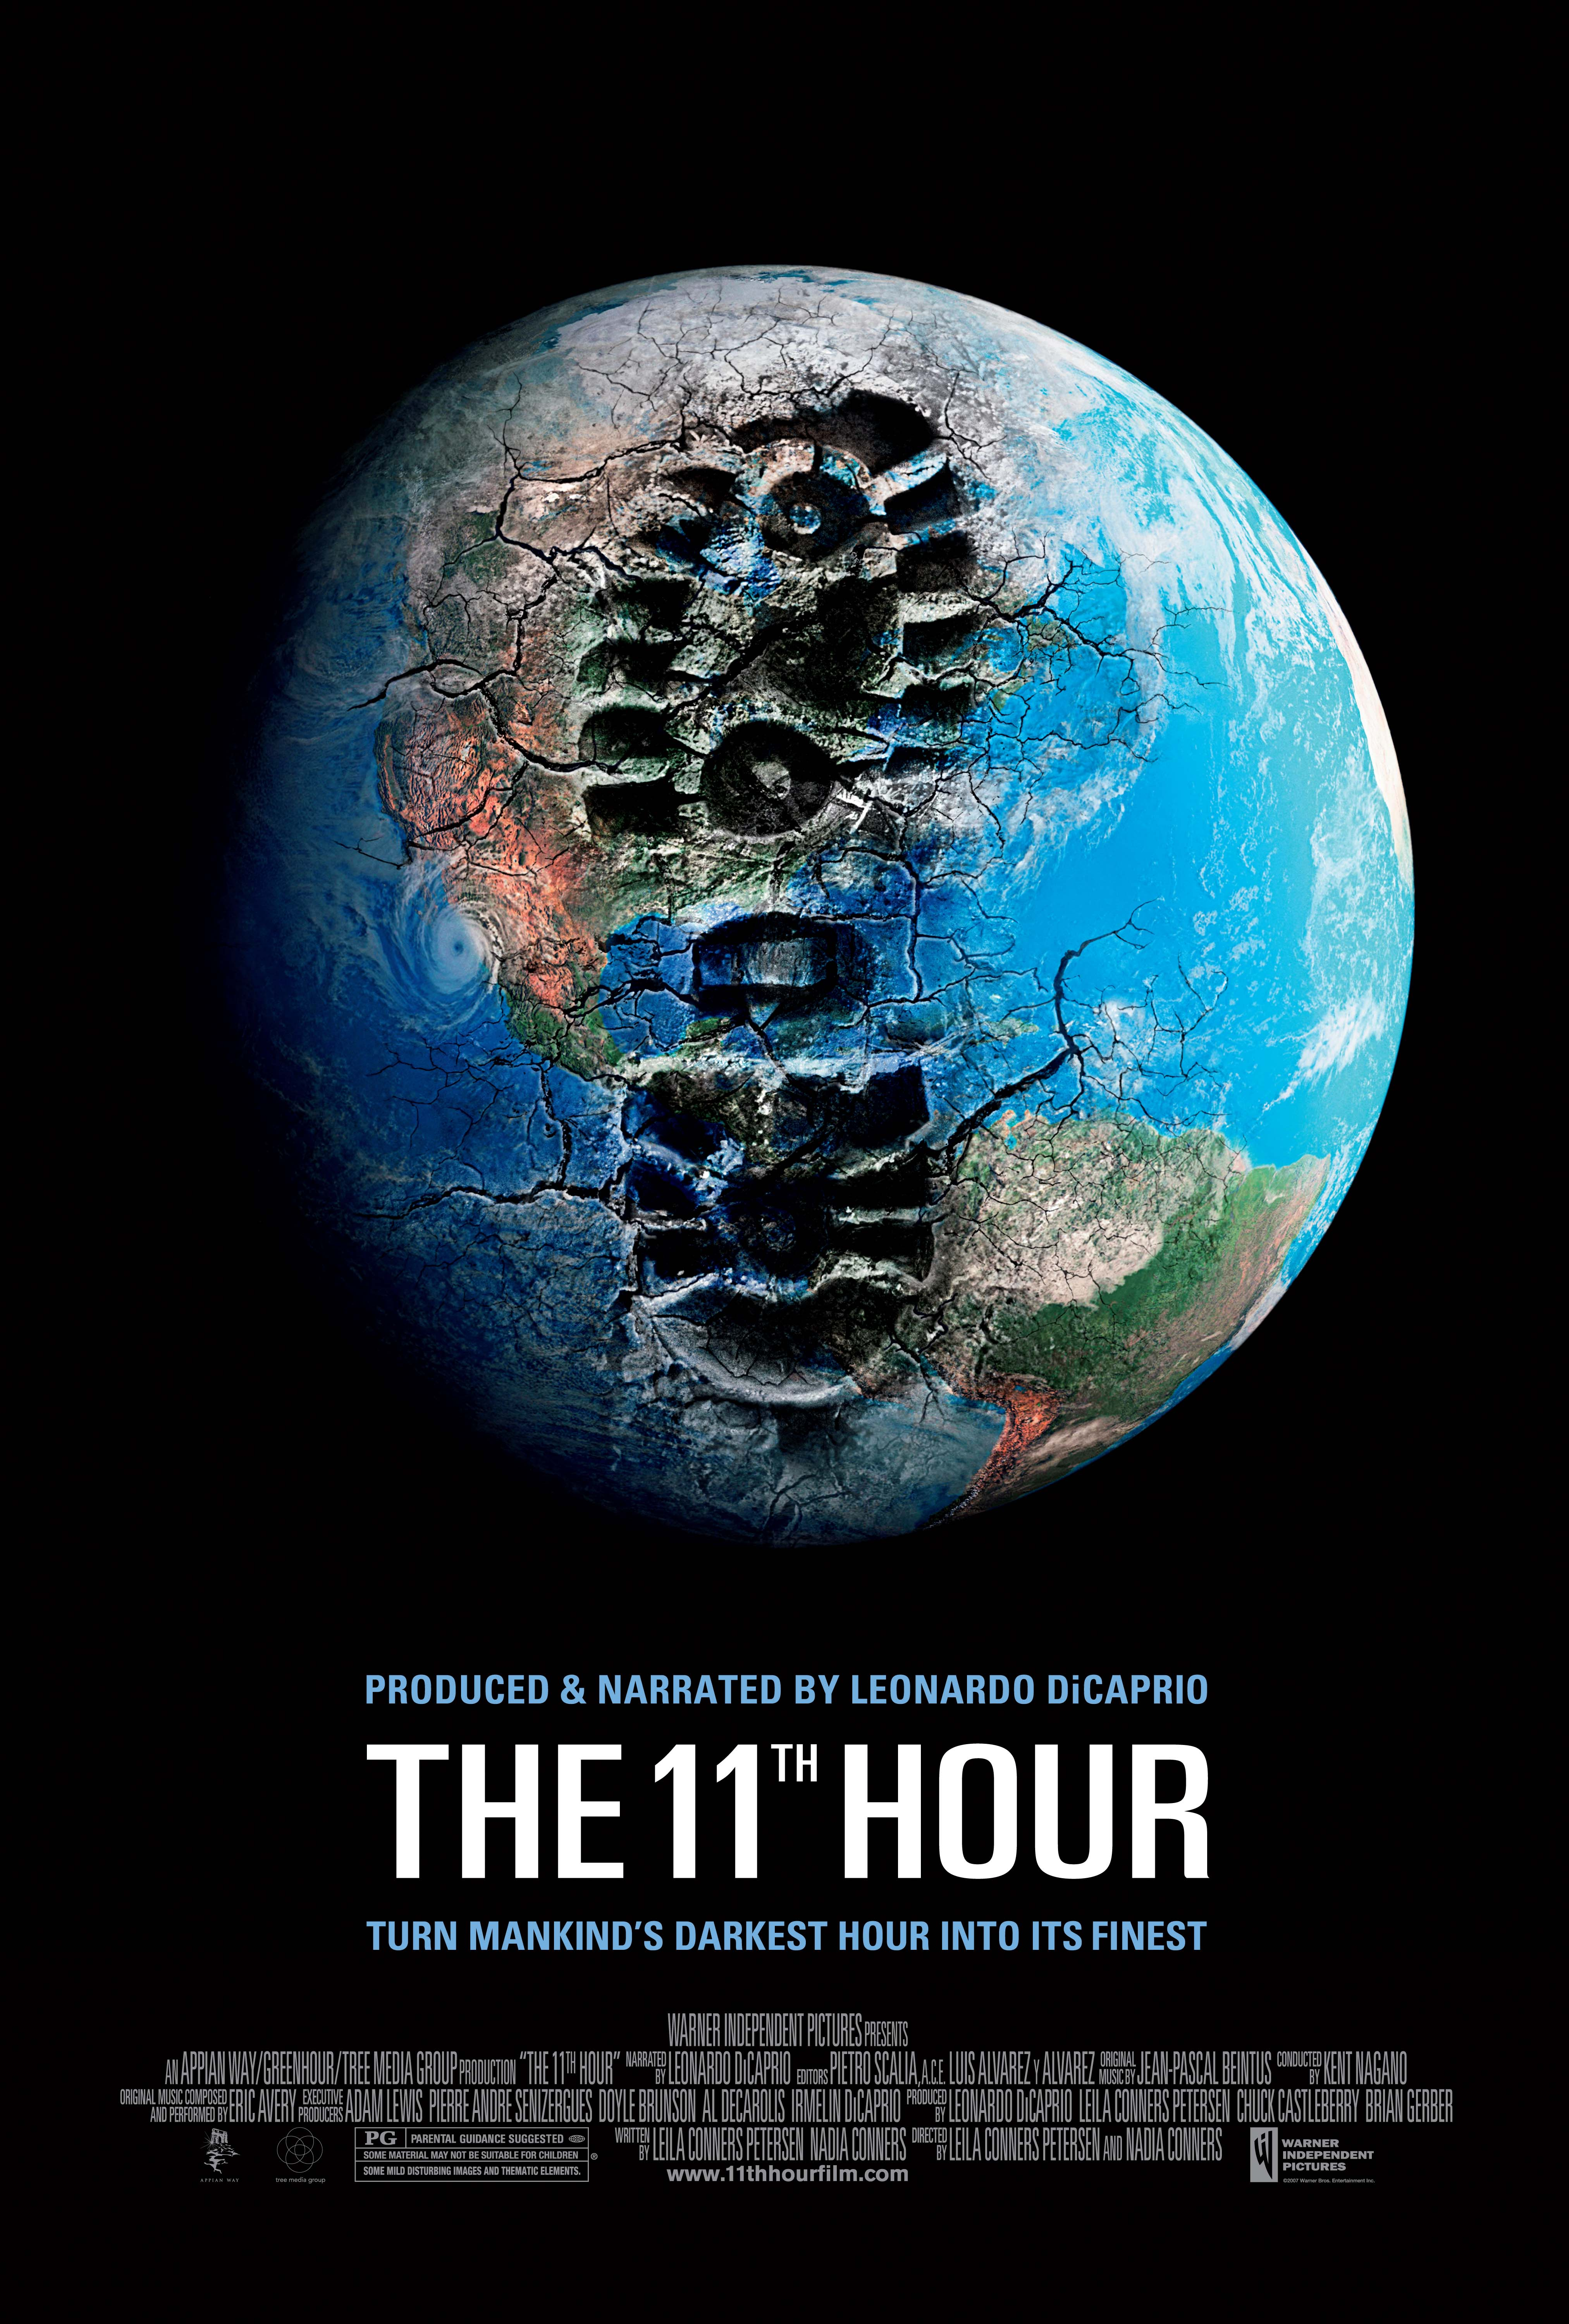 Abb. 22: Poster zu THE 11TH HOUR